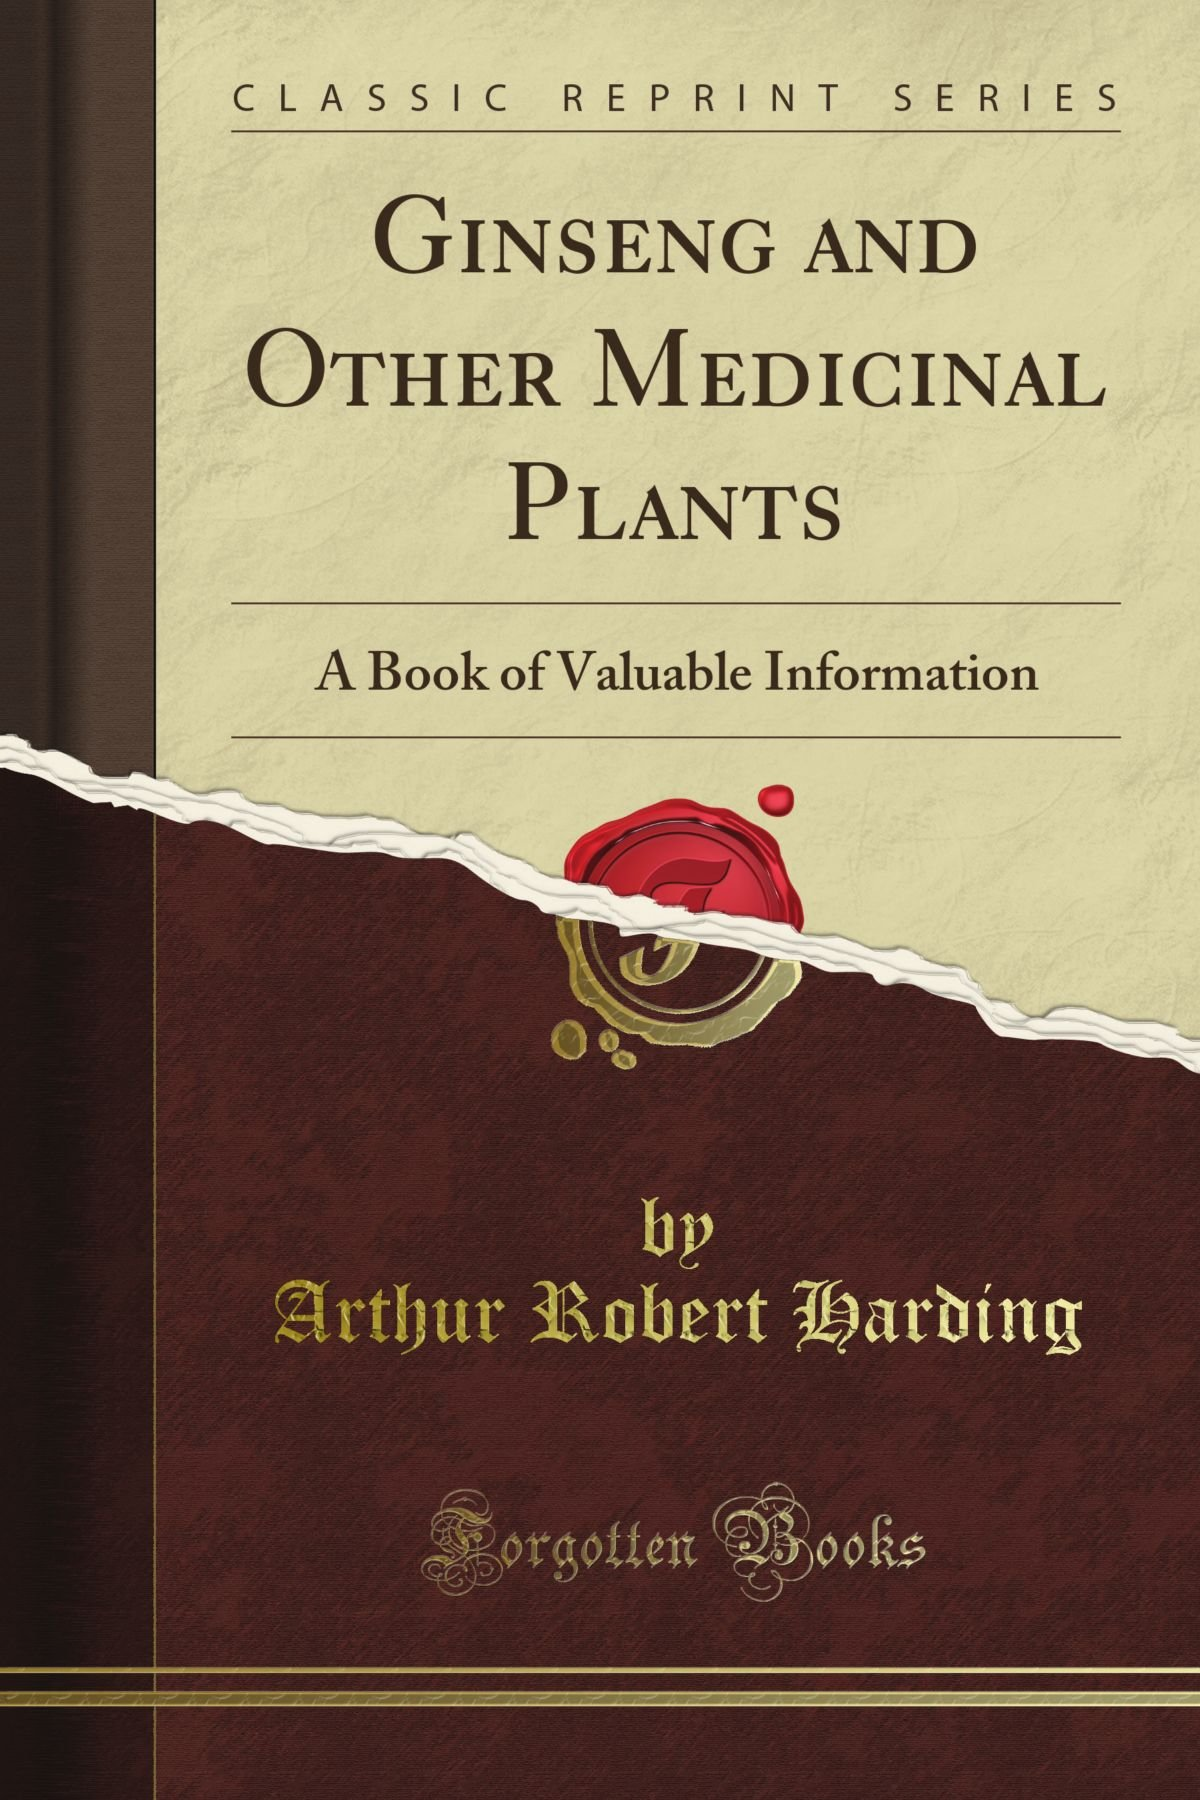 Ginseng and Other Medicinal Plants: A Book of Valuable Information (Classic Reprint)